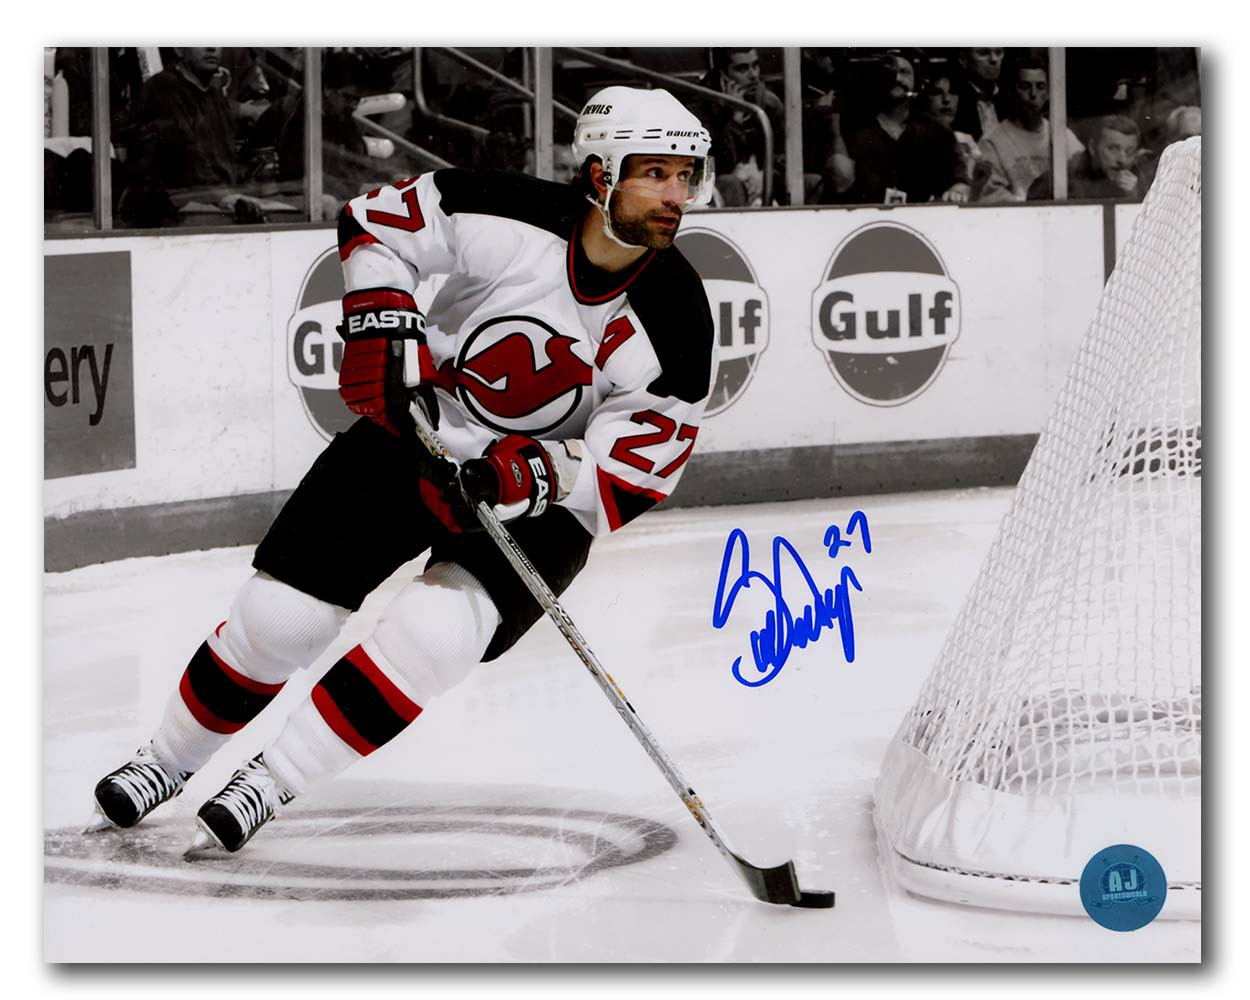 Scott Niedermayer New Jersey Devils Autographed Signed Metallic Spotlight  8x10 Photo - Certified Authentic f96d00afd